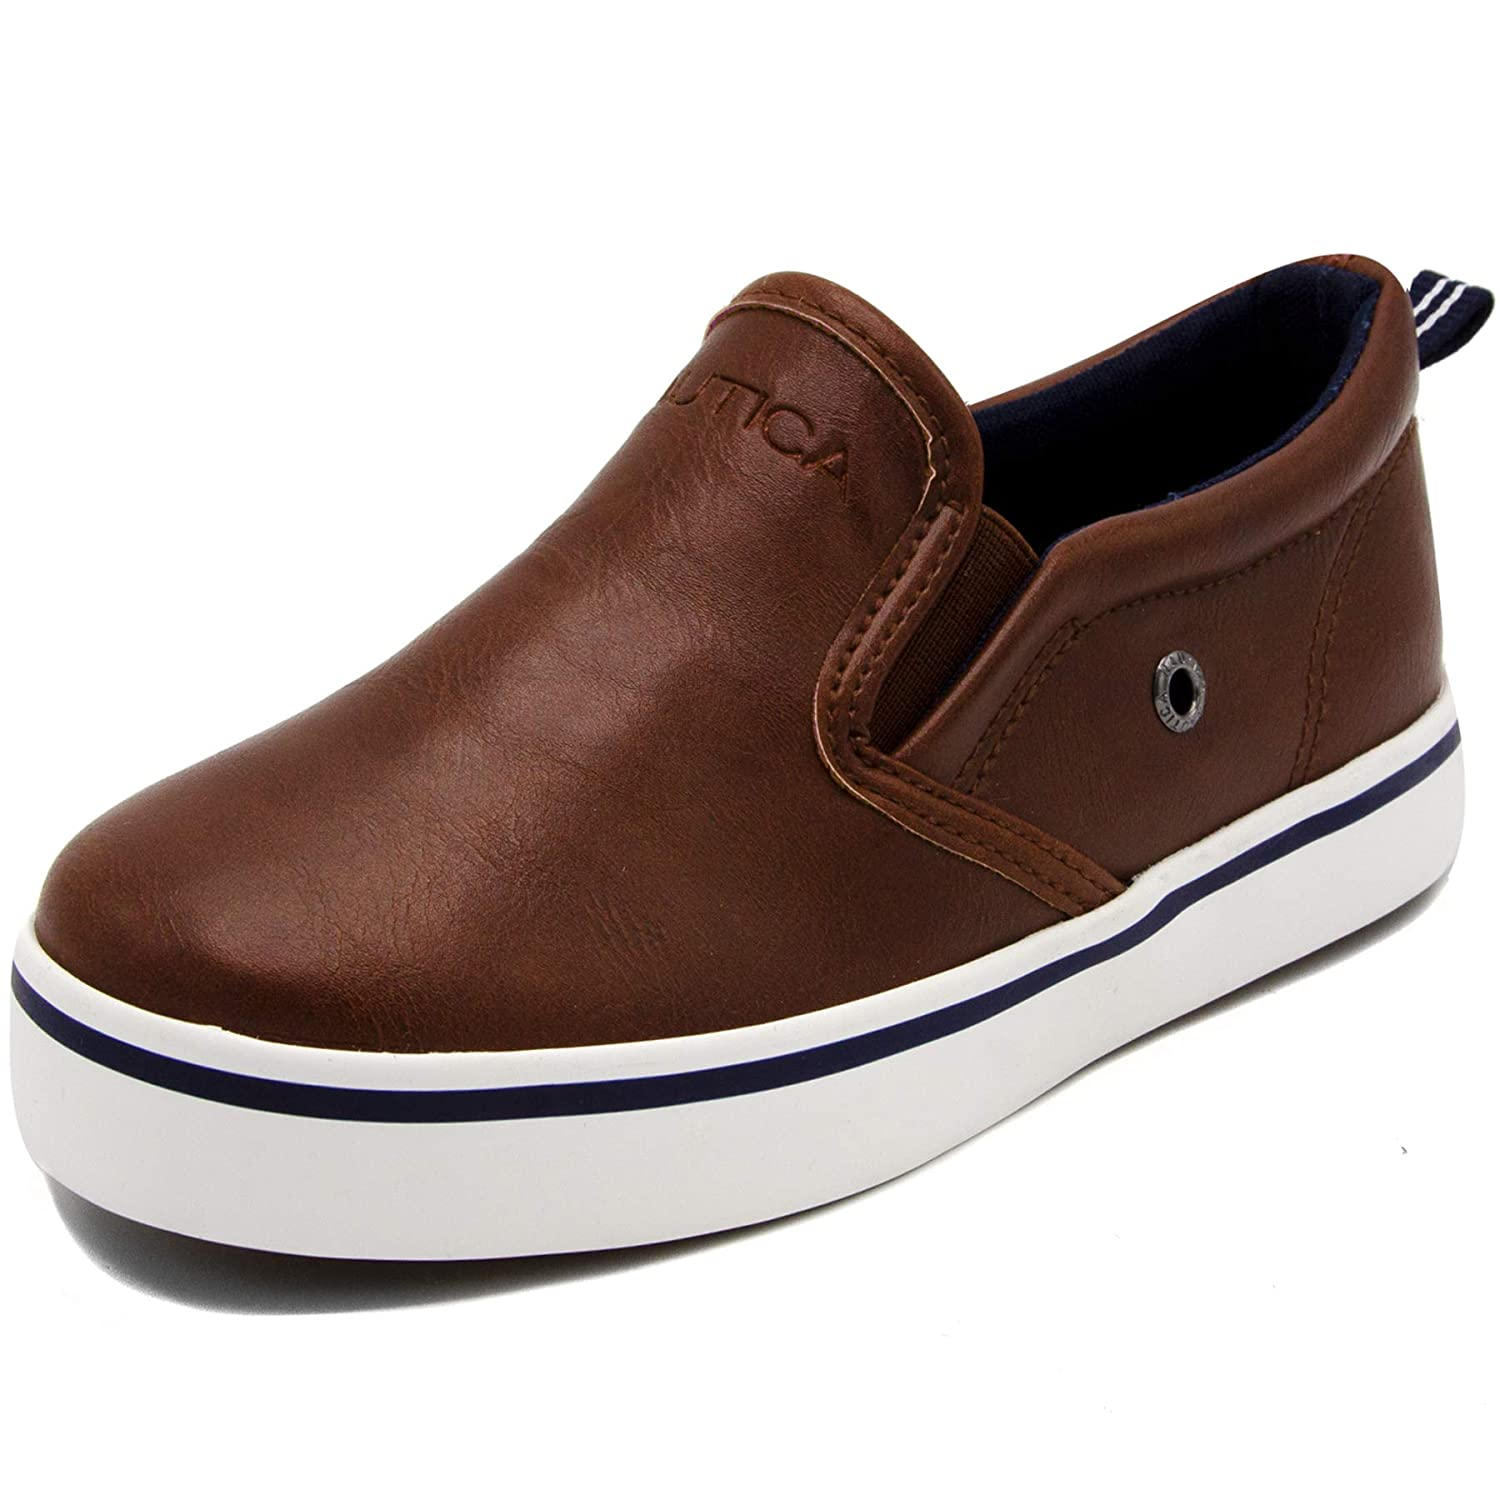 Toddler//Little Kid Nautica Akeley Toddler Canvas Sneaker Slip-On Casual Shoes